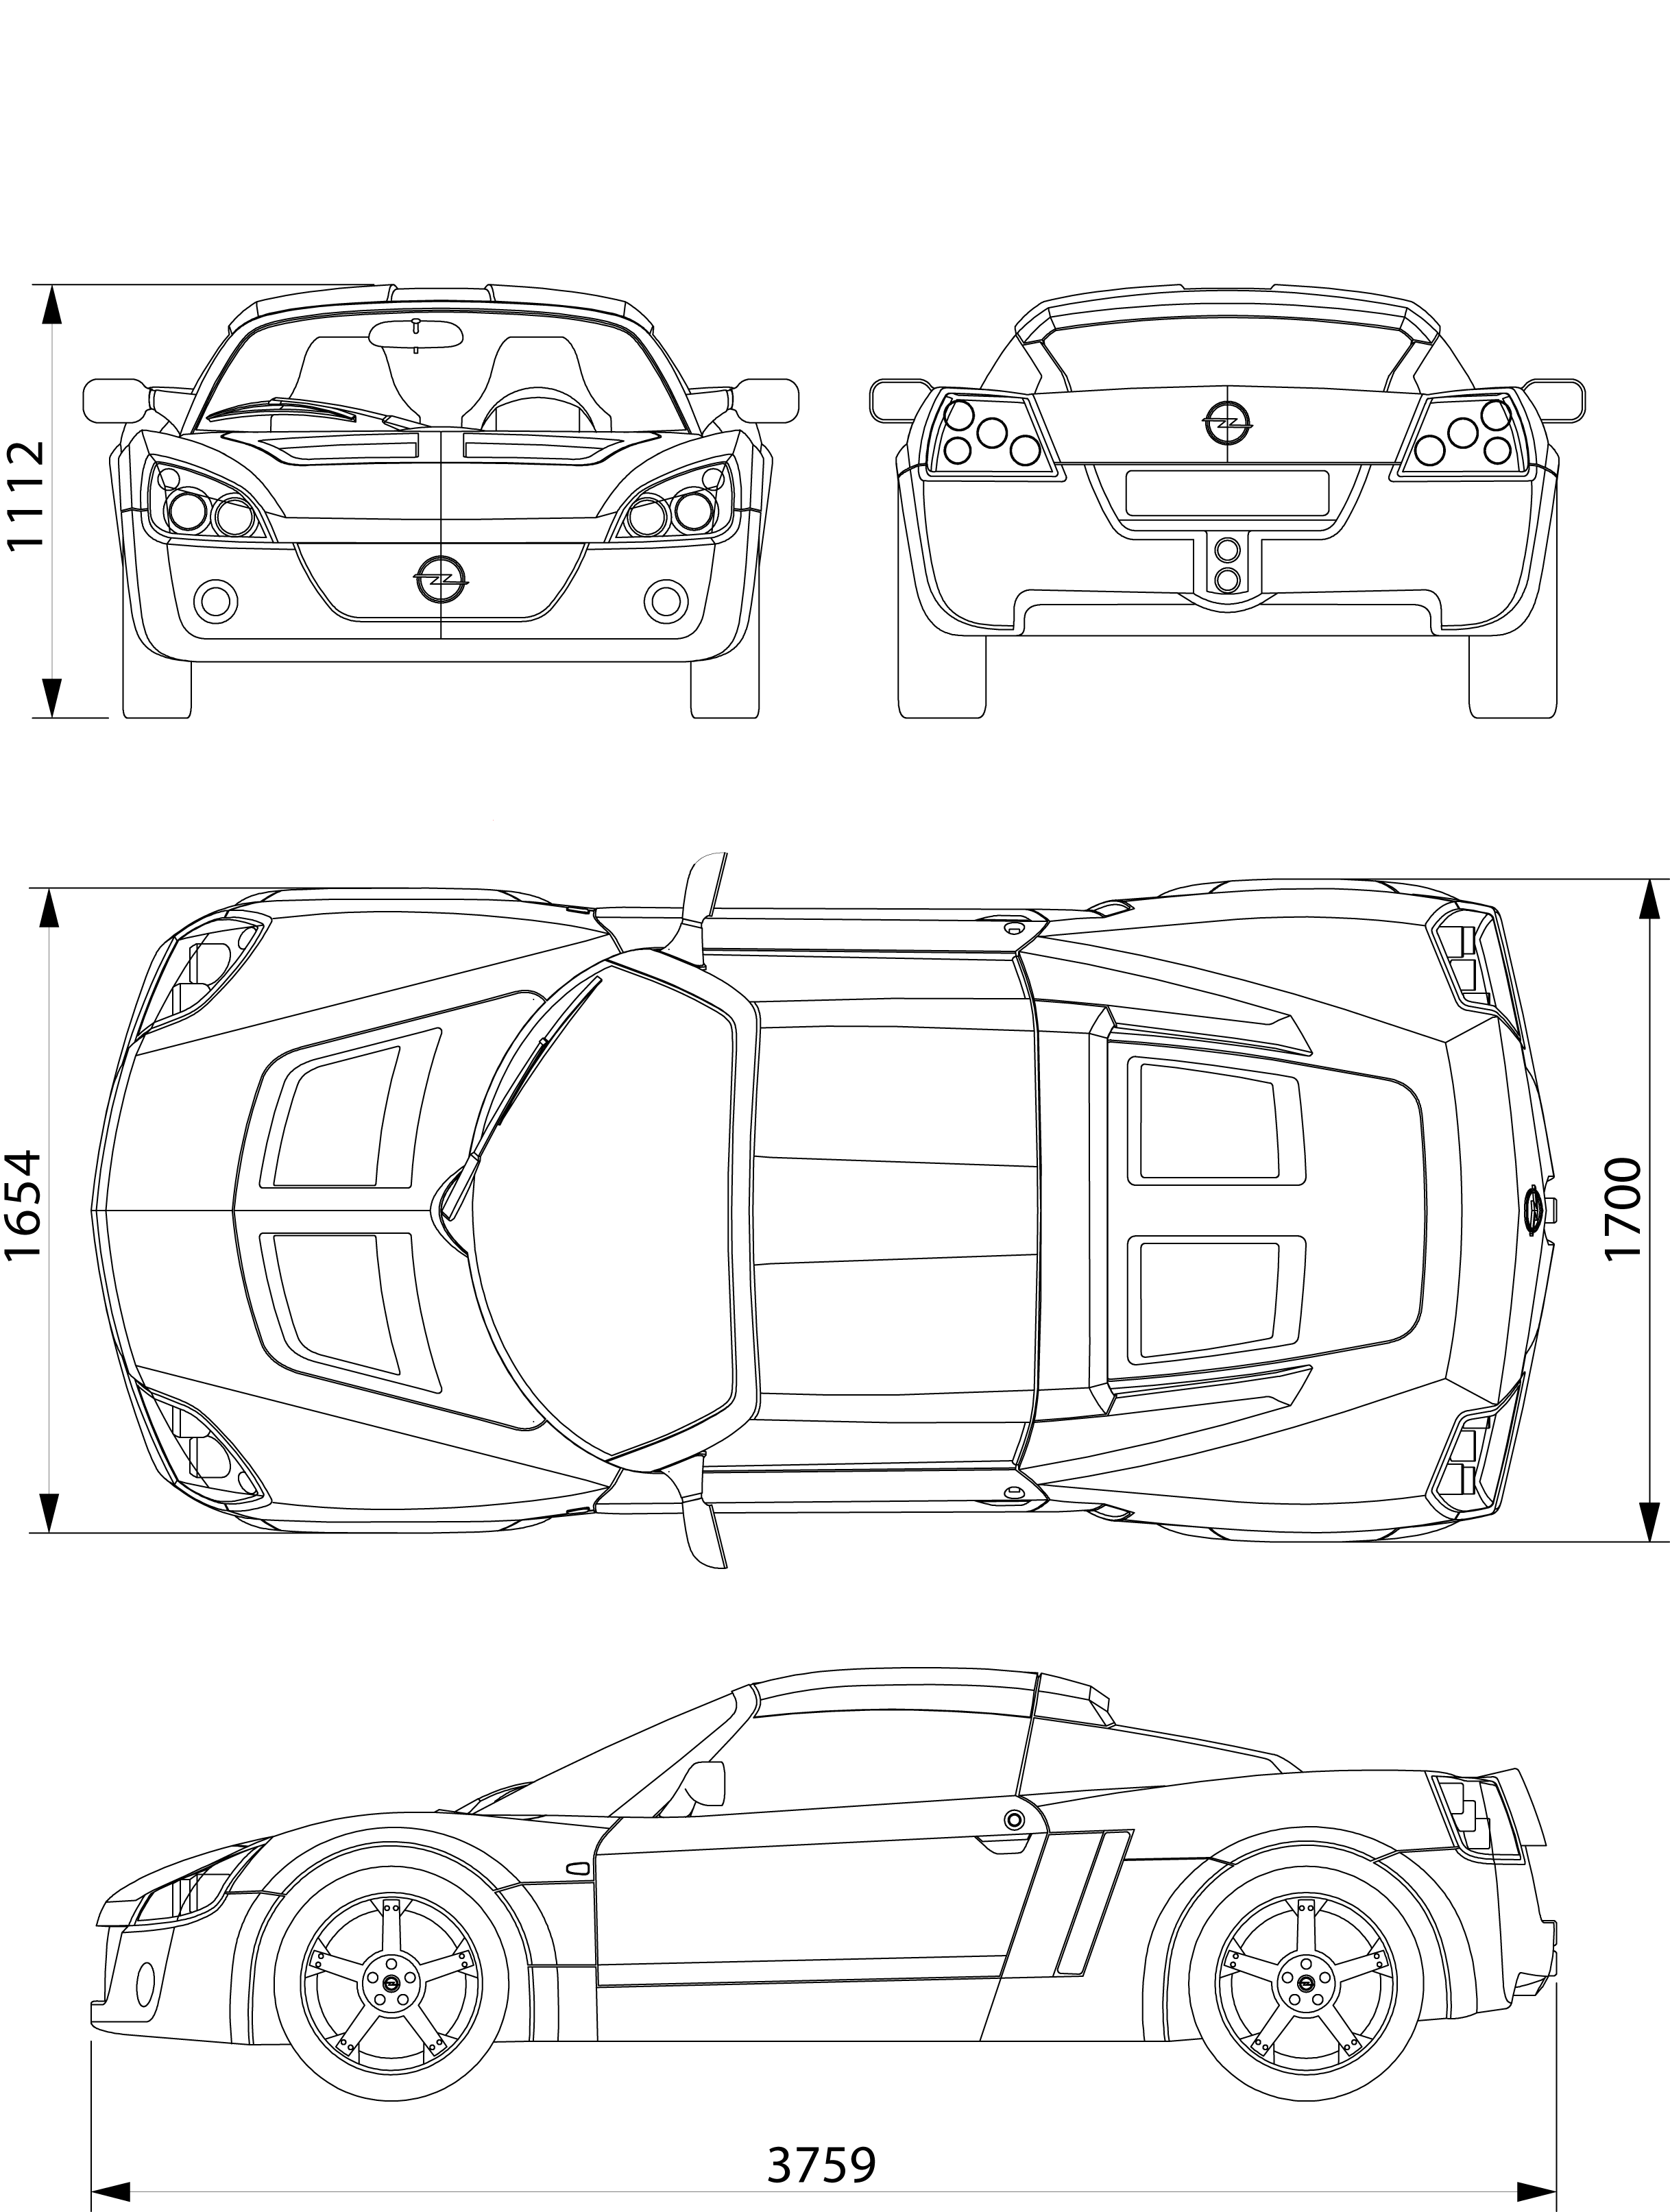 Opel speedster blueprint nice rides pinterest cars vehicle opel speedster blueprint malvernweather